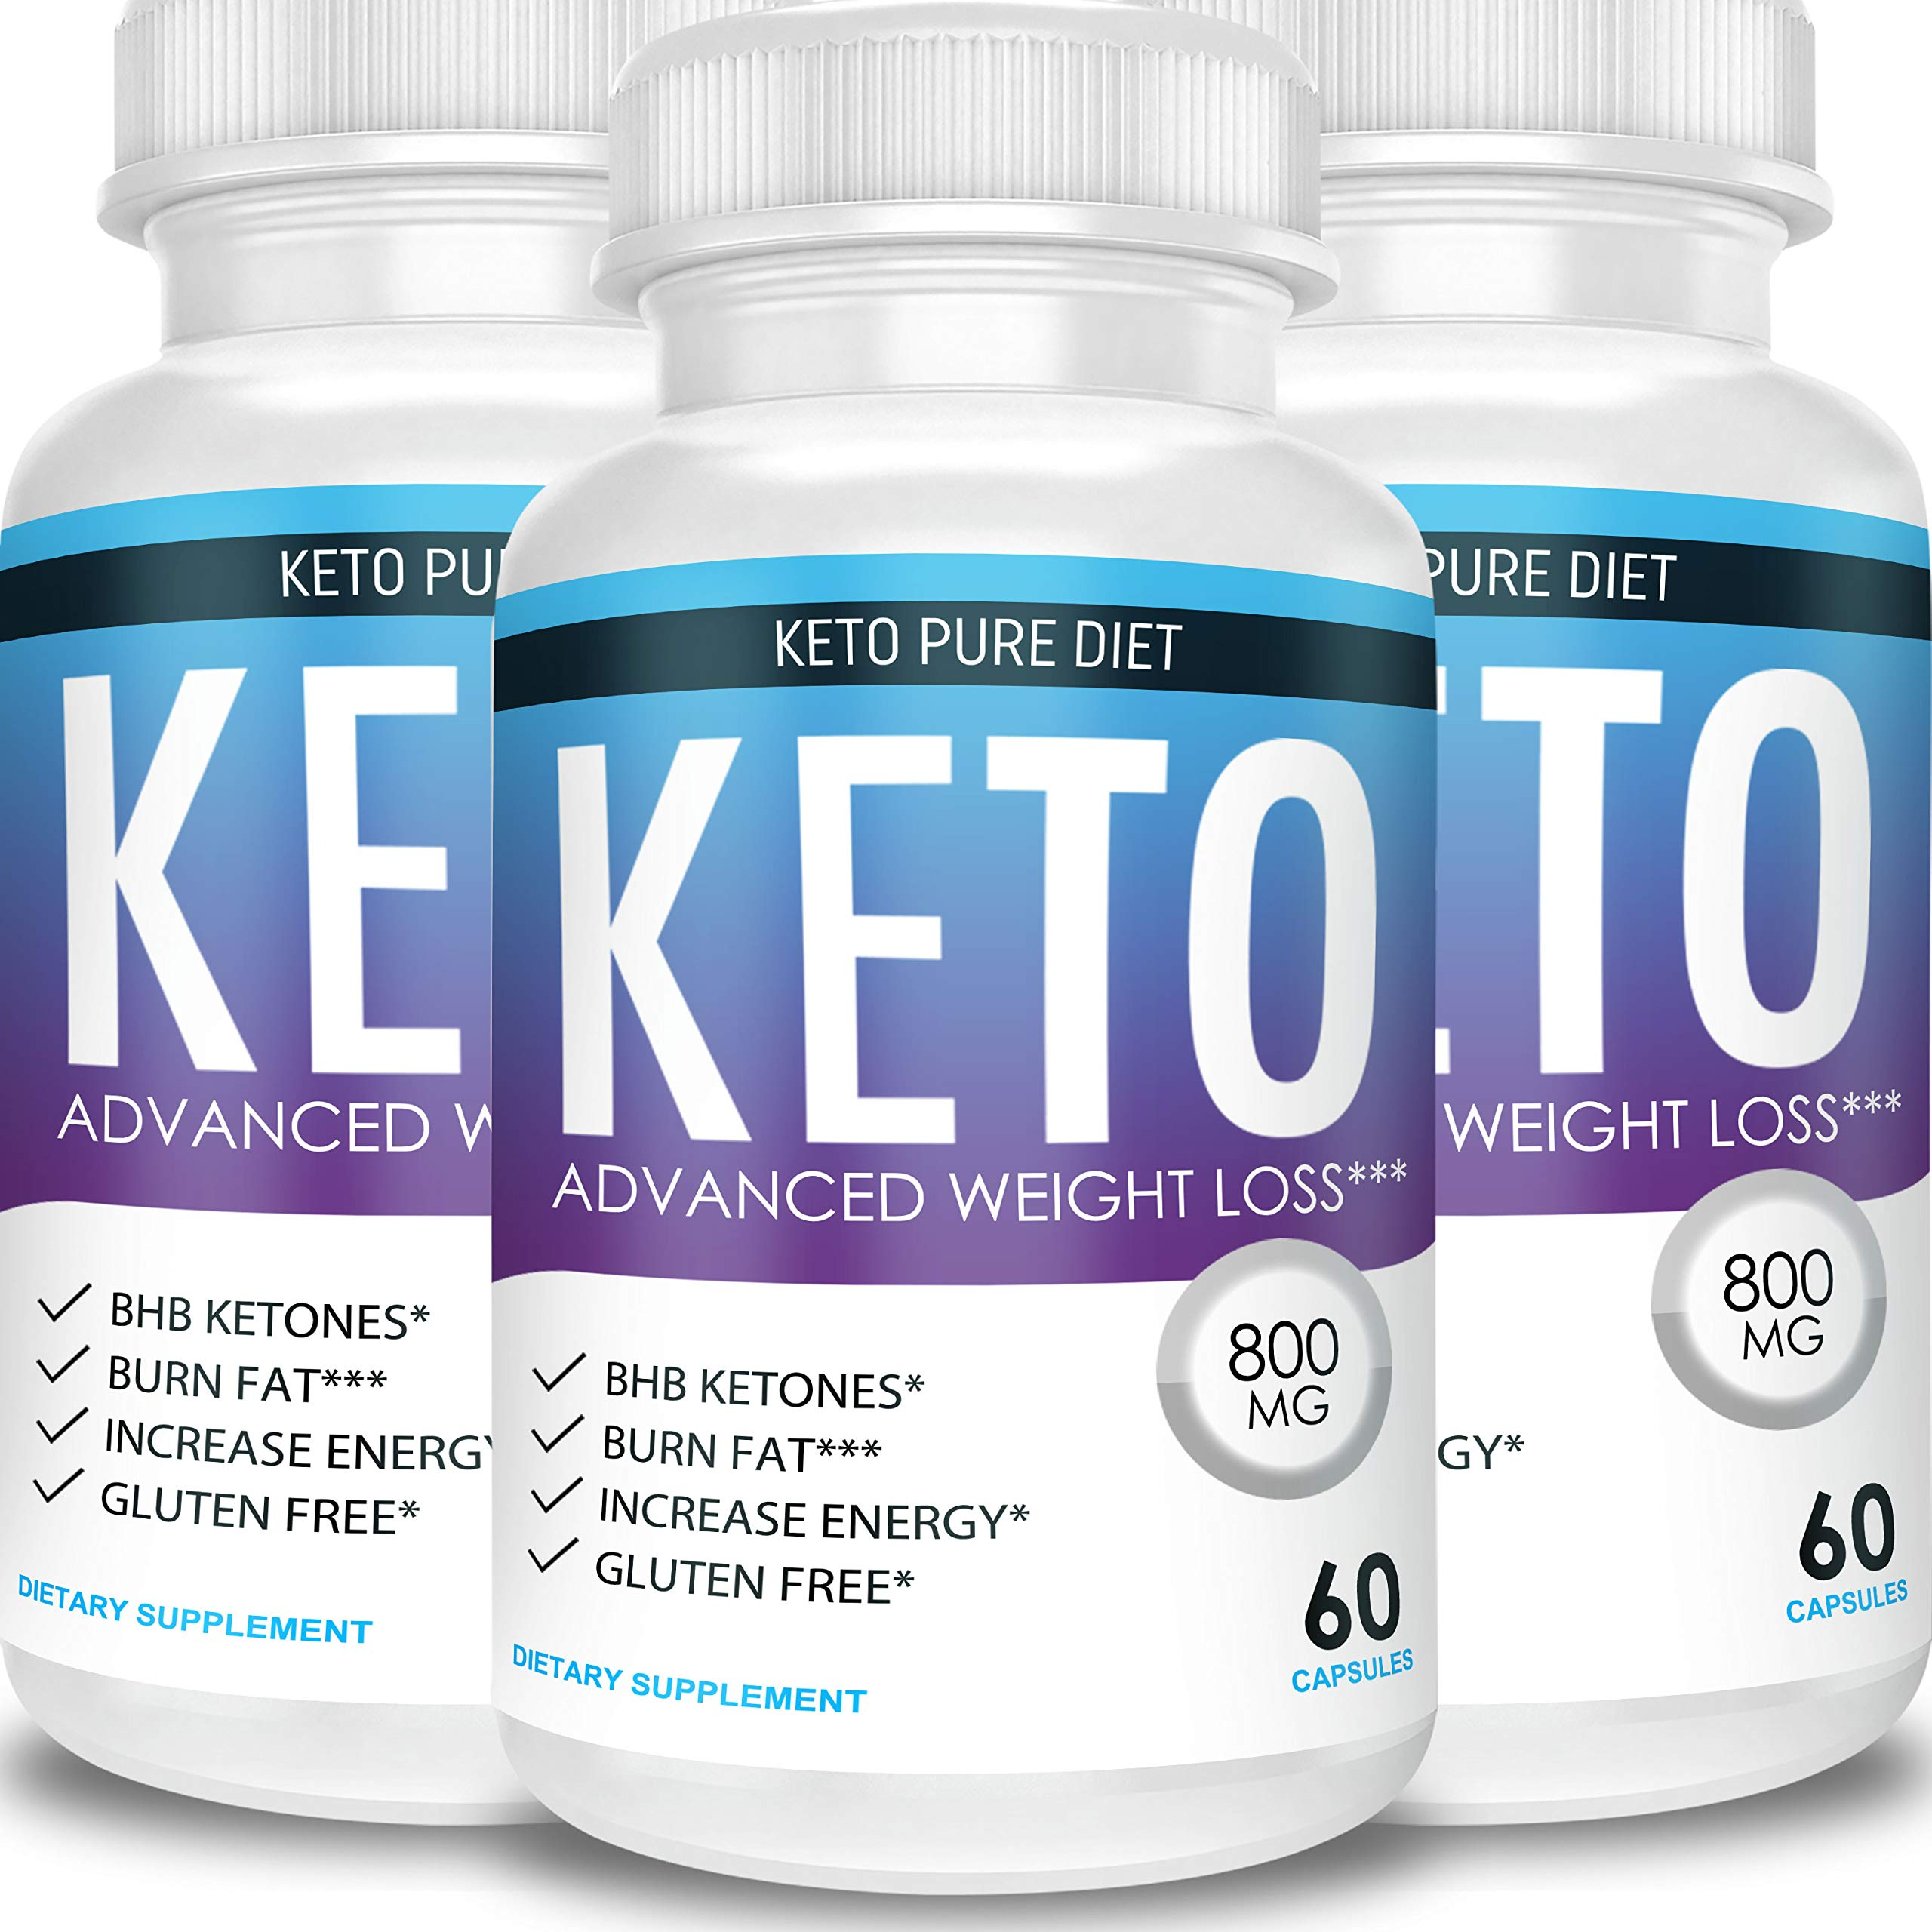 Keto Pure Diet - Advanced Weight Loss - Ketosis Supplement (3 Month Supply) by Keto Pure Diet